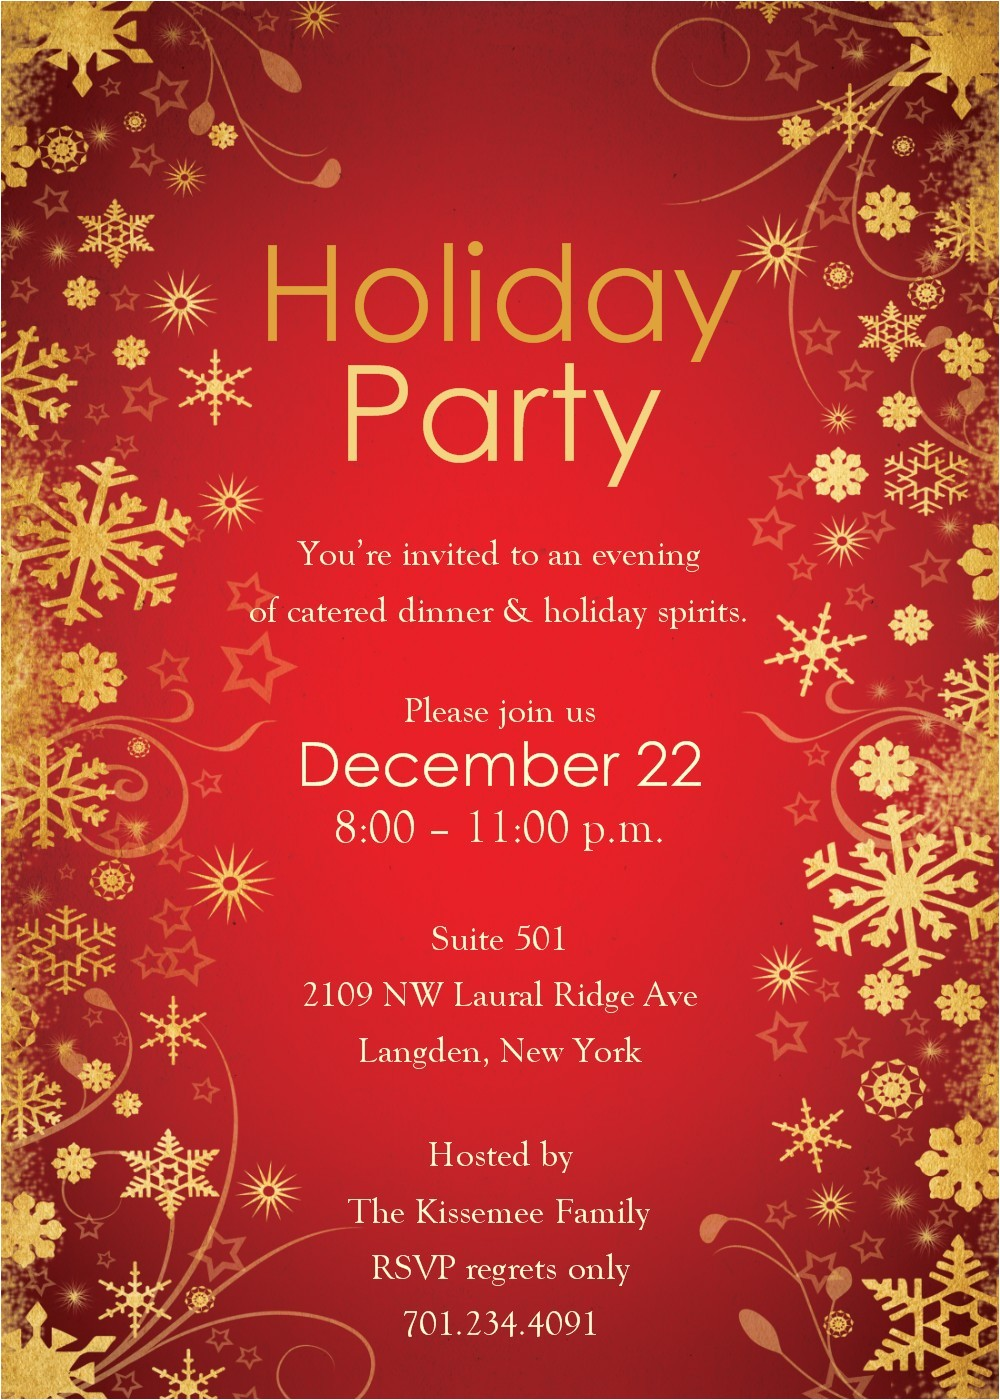 Christmas Party Invitation Templates Free Word Free Holiday Party Invitation Templates Best Template